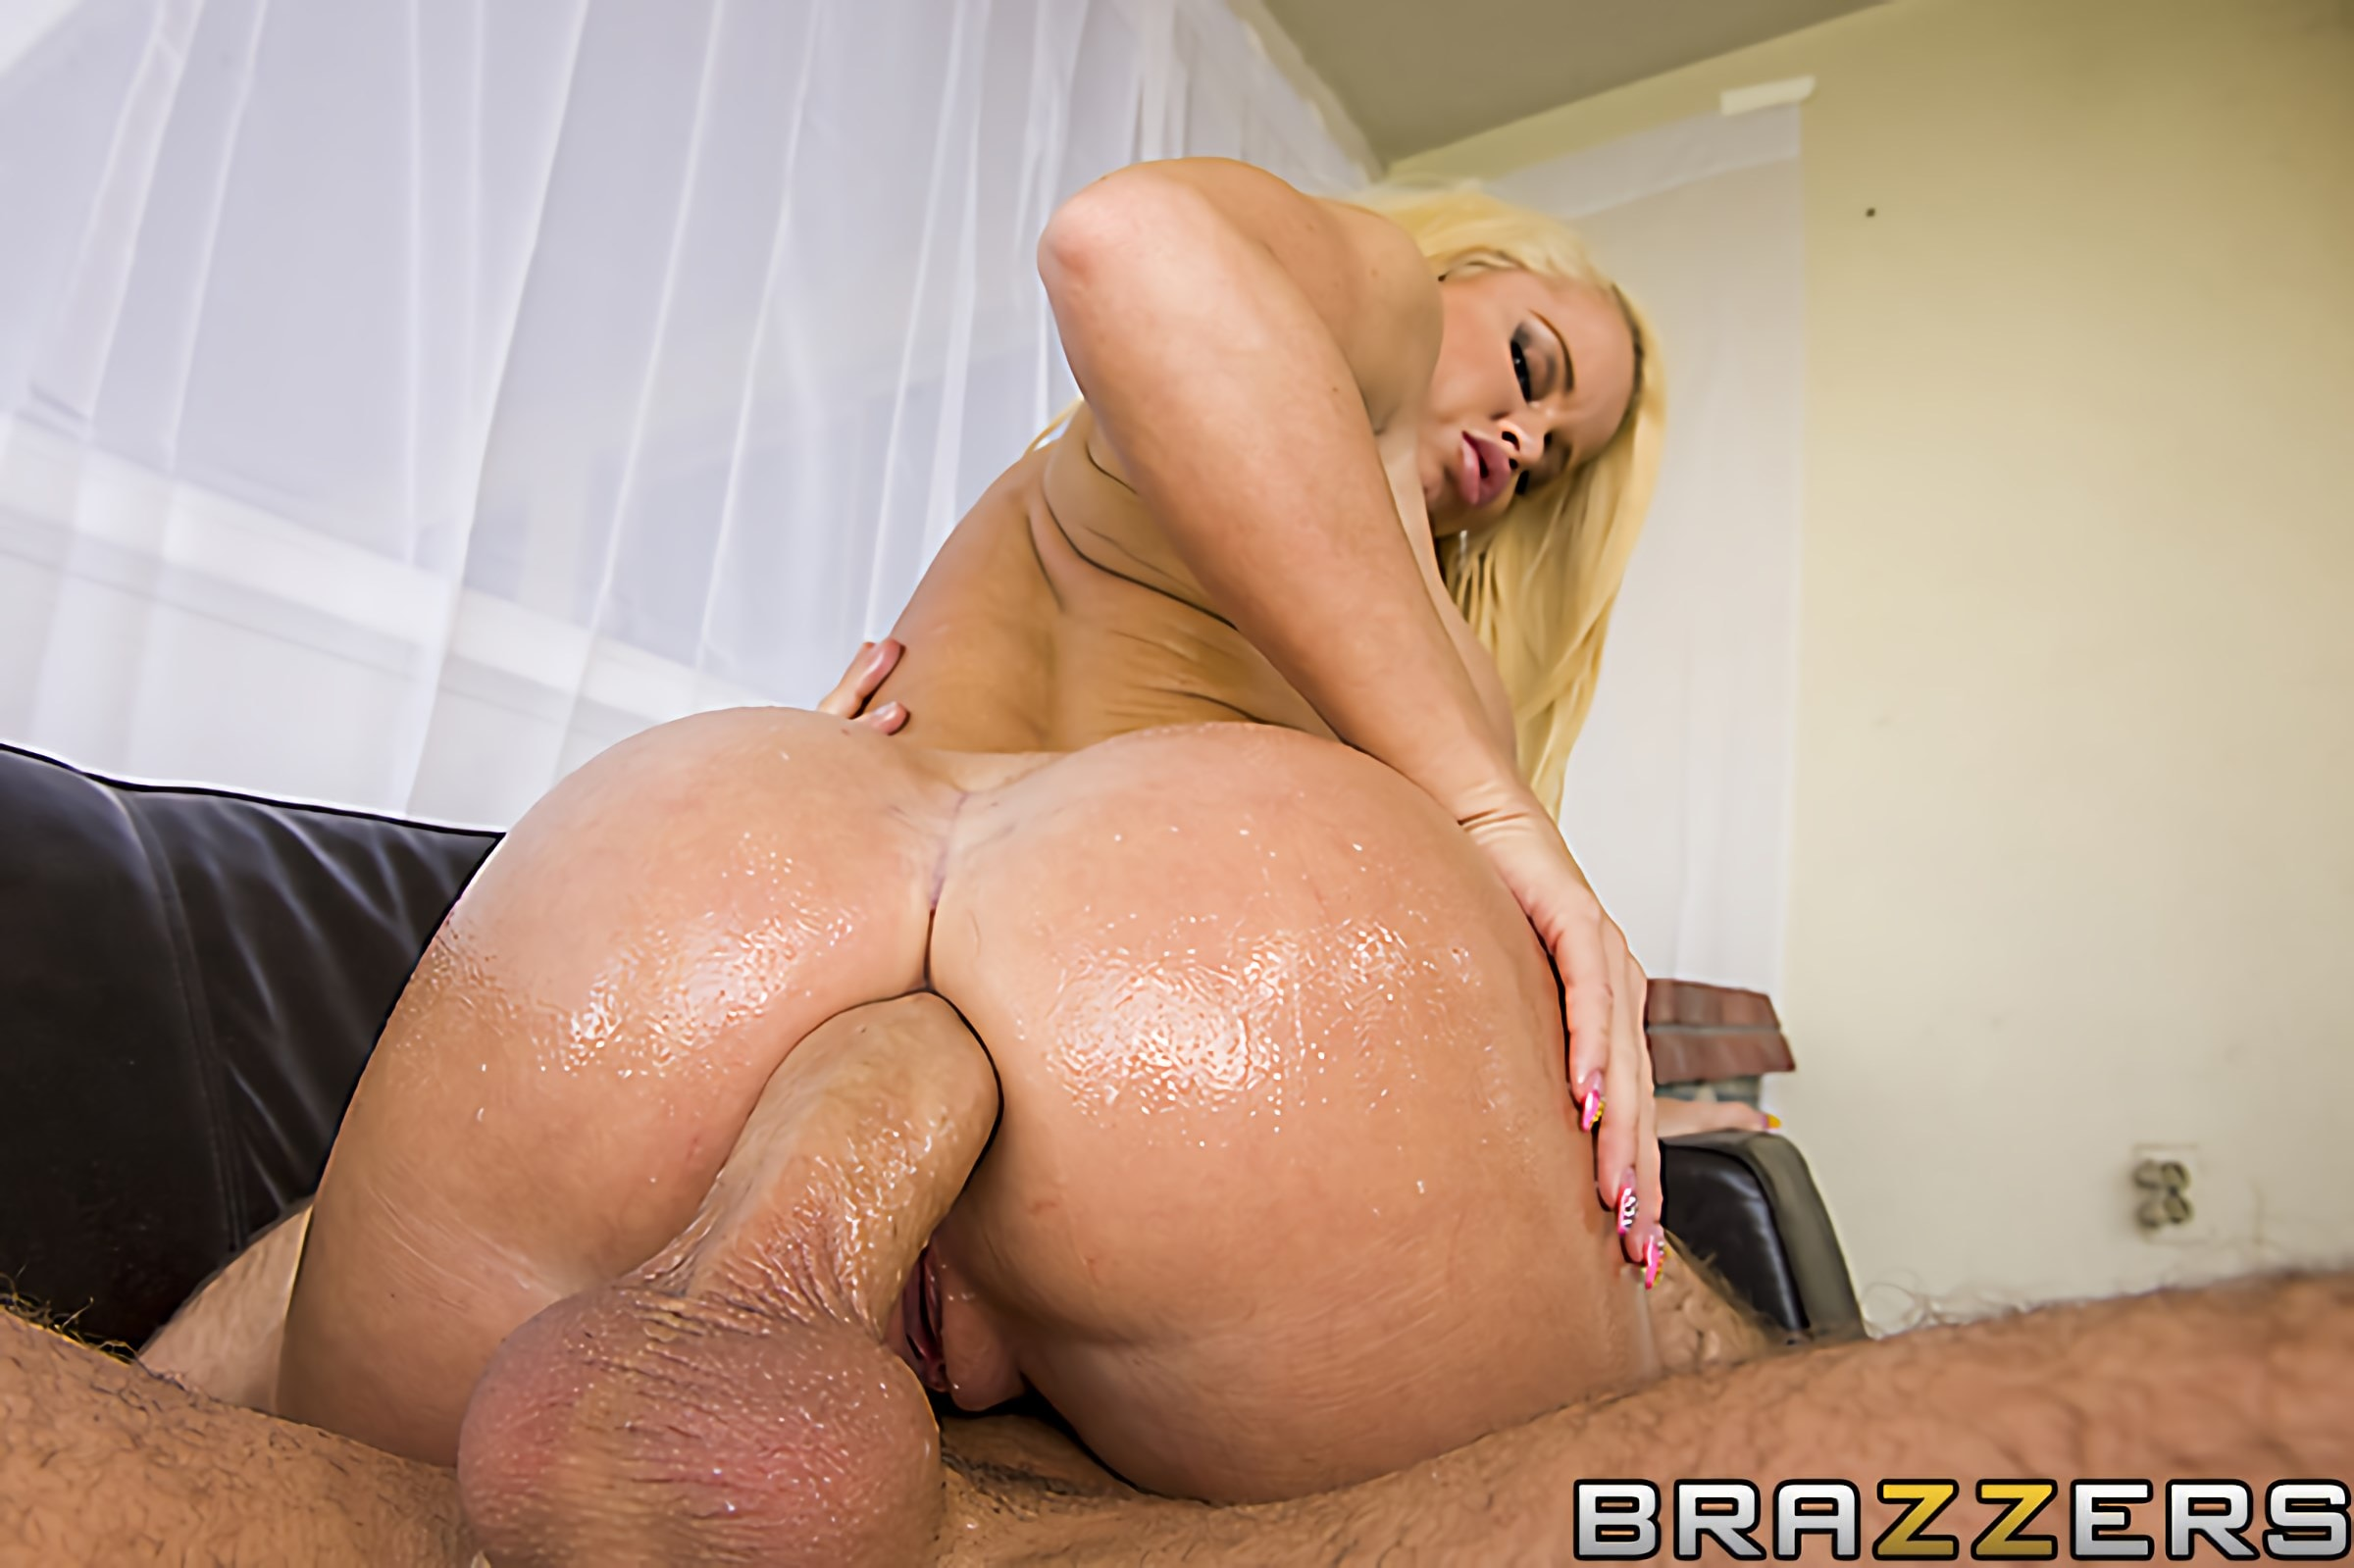 Brazzers 'Car Wash Sex' starring Nikki Delano (photo 10)